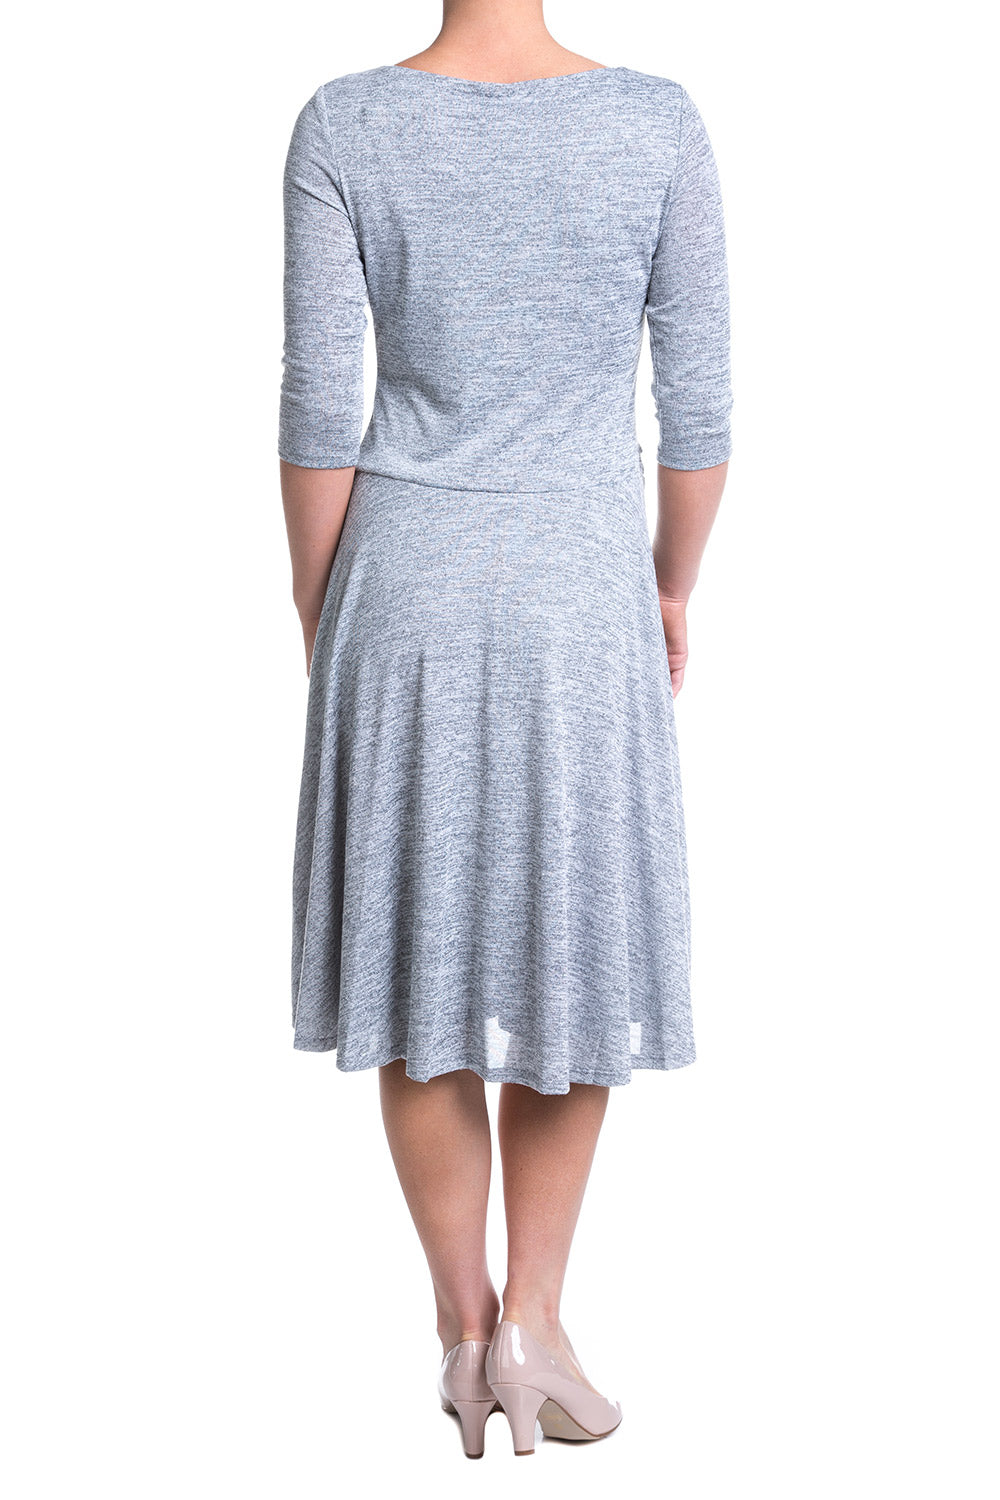 Type 2 Heathered Heaven Dress